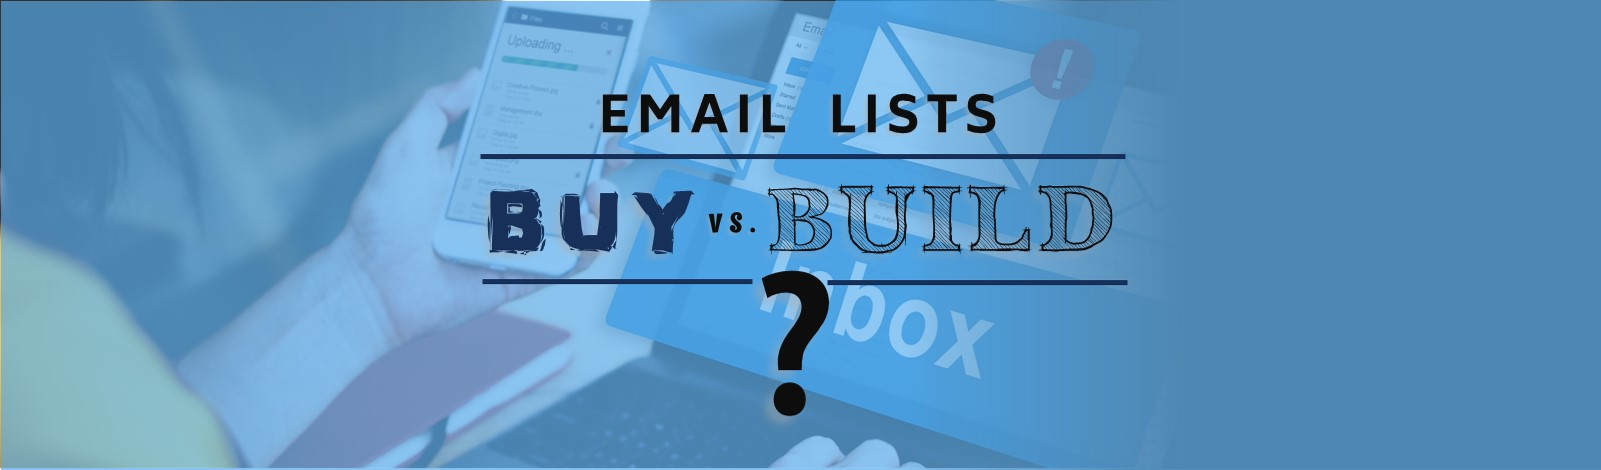 Email Lists: Should You Buy or Build